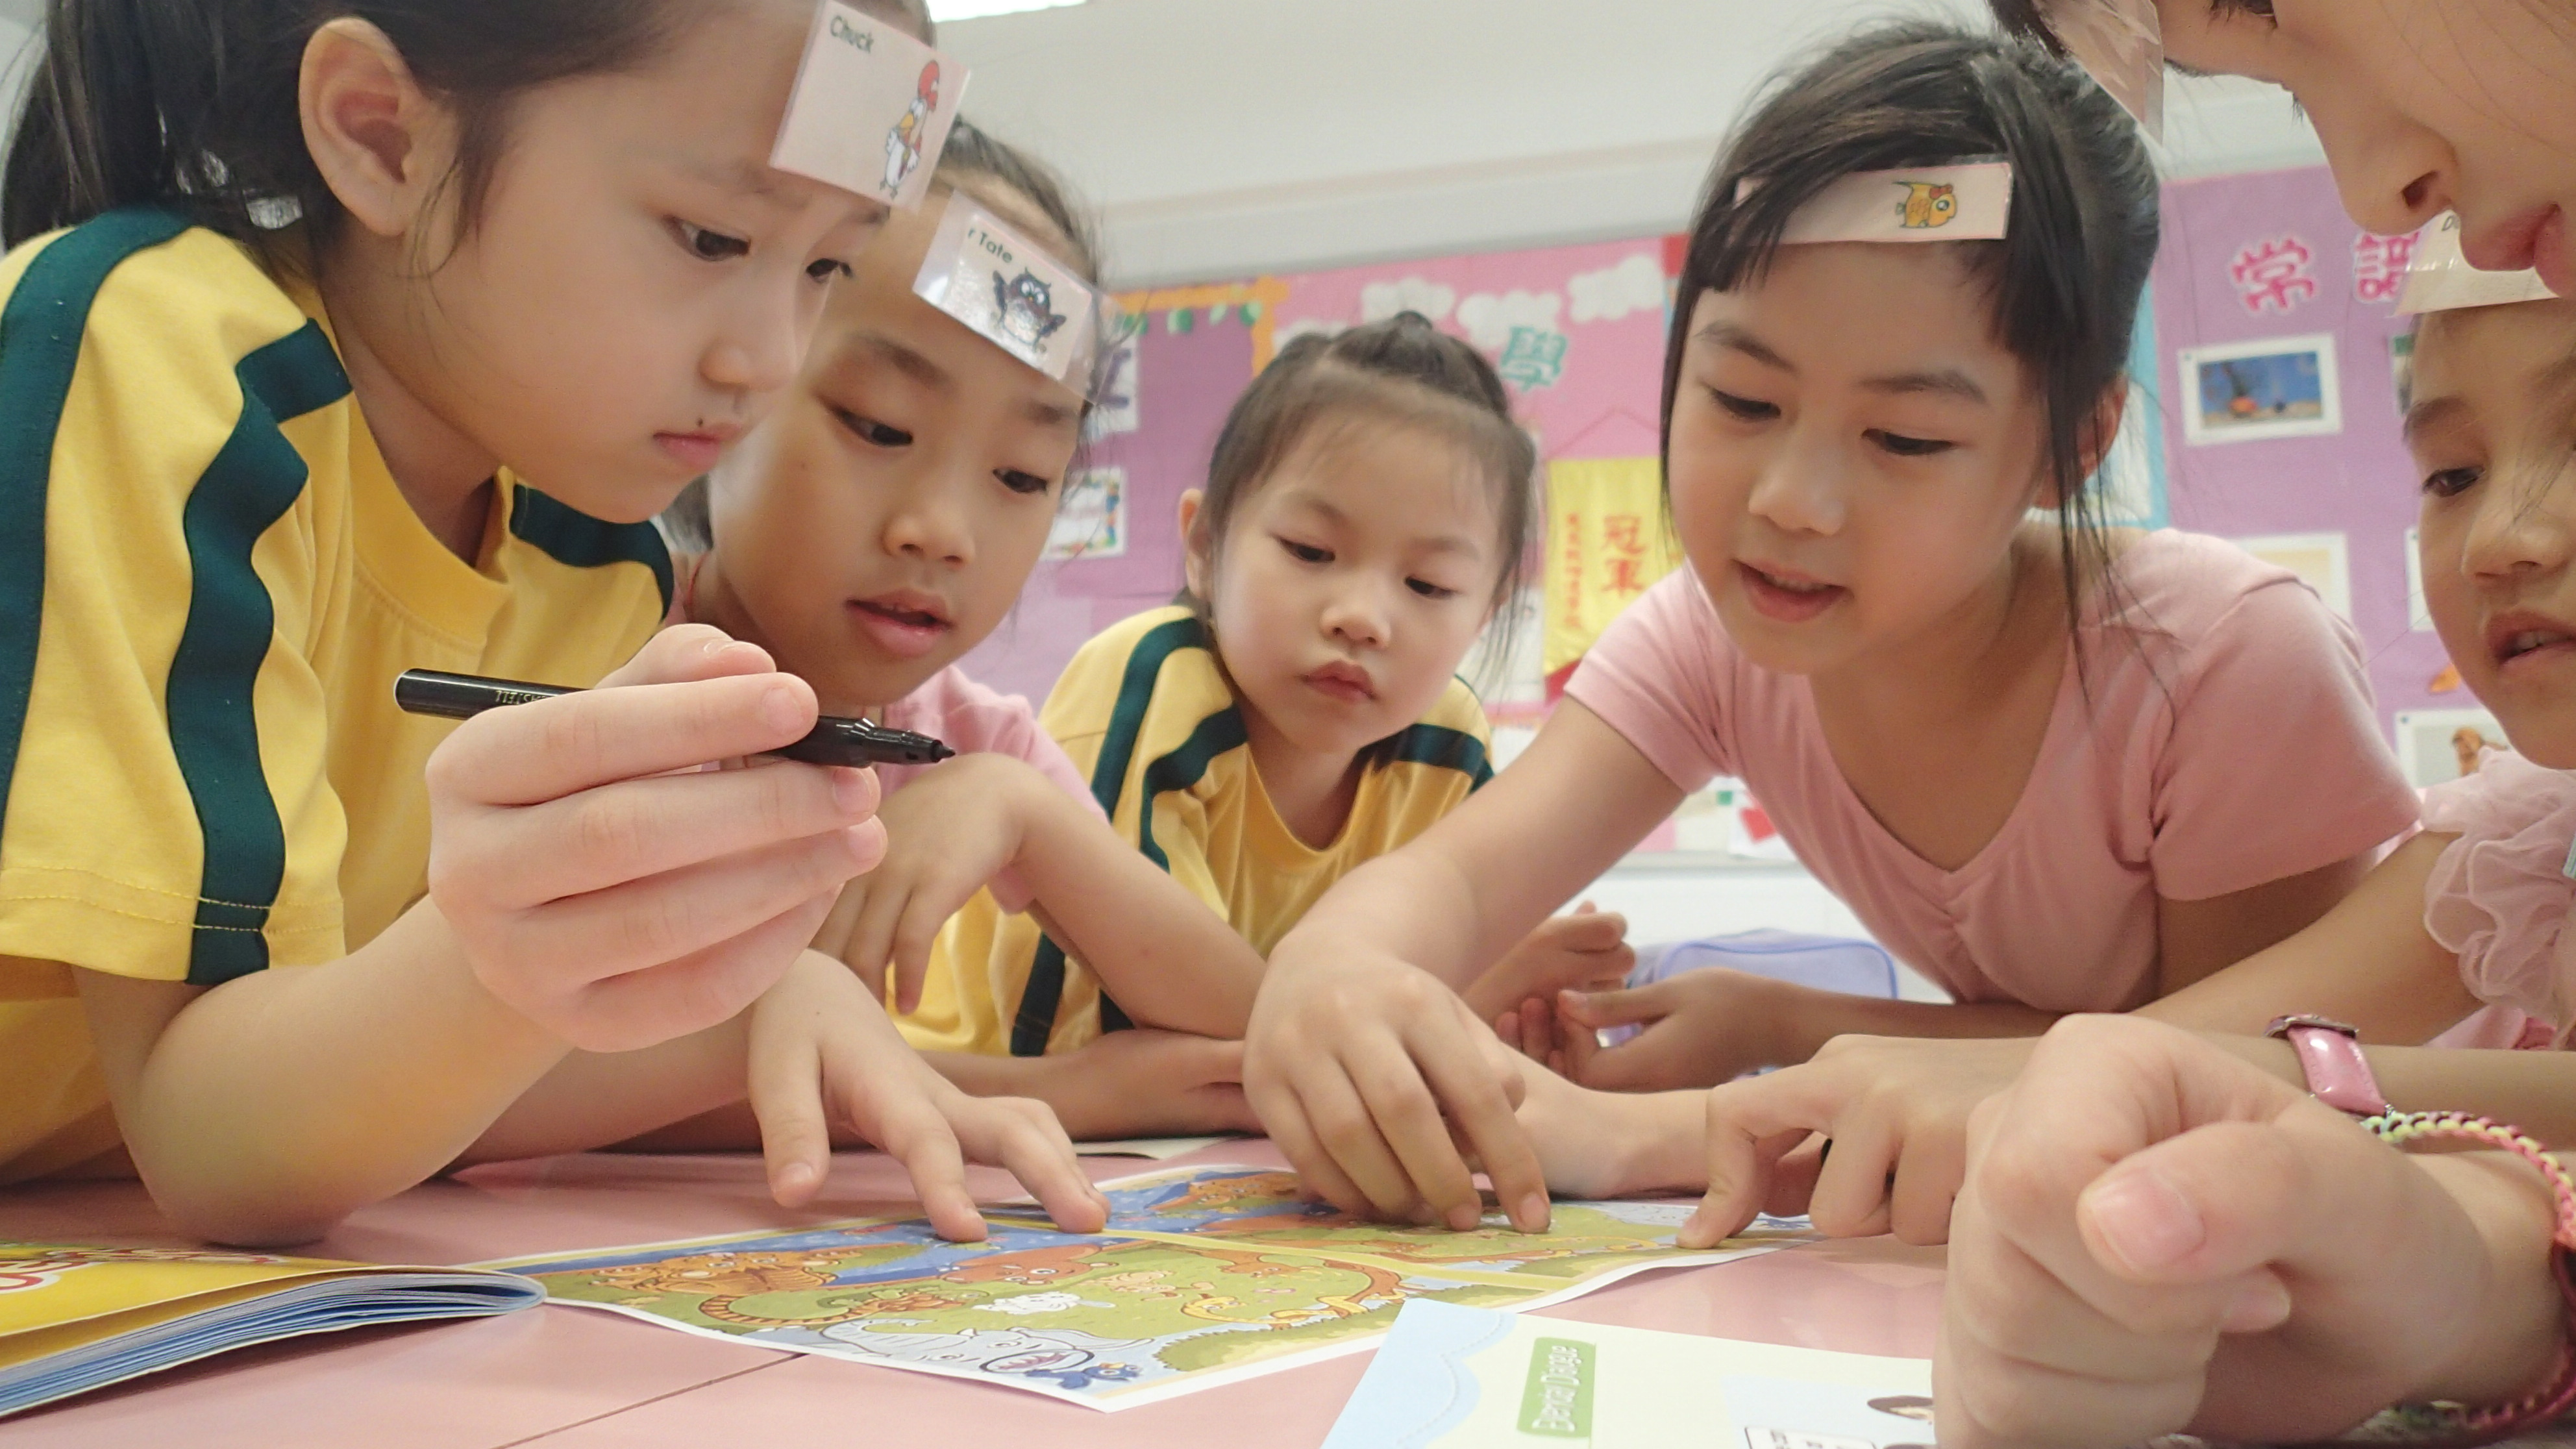 a group of asian girls are playing a table game in a TEFL classroom